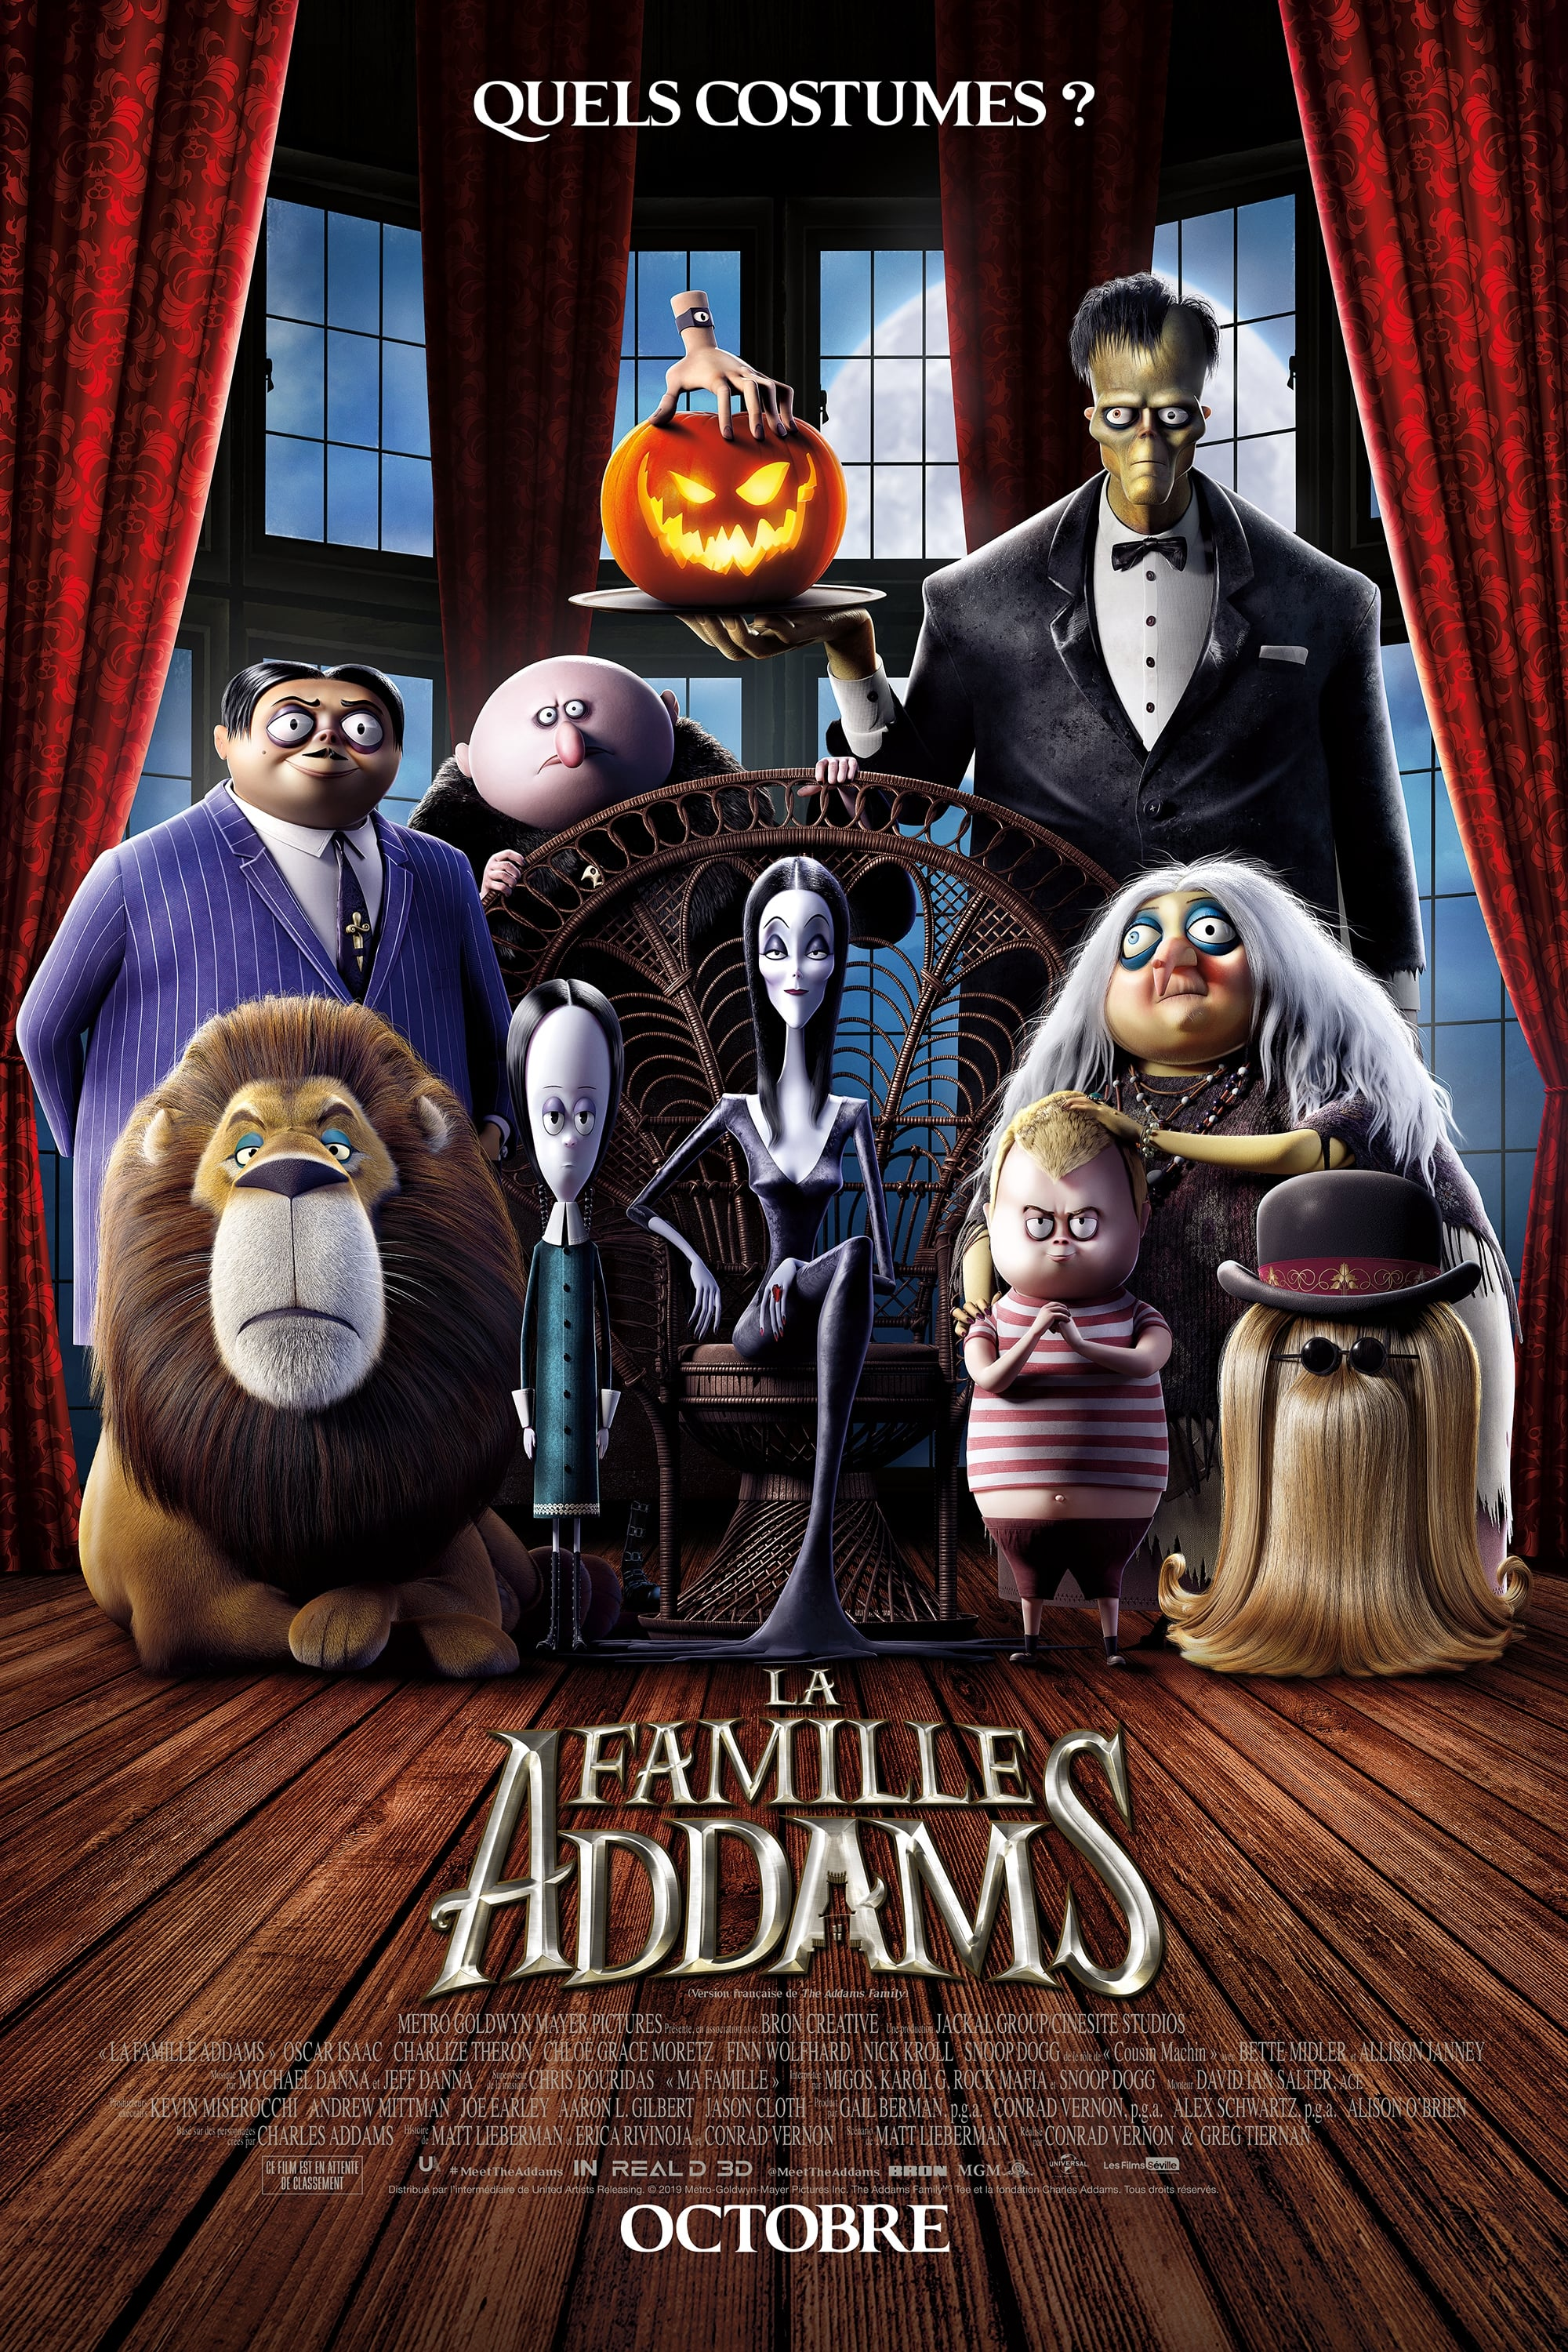 La Famille Addams streaming sur zone telechargement